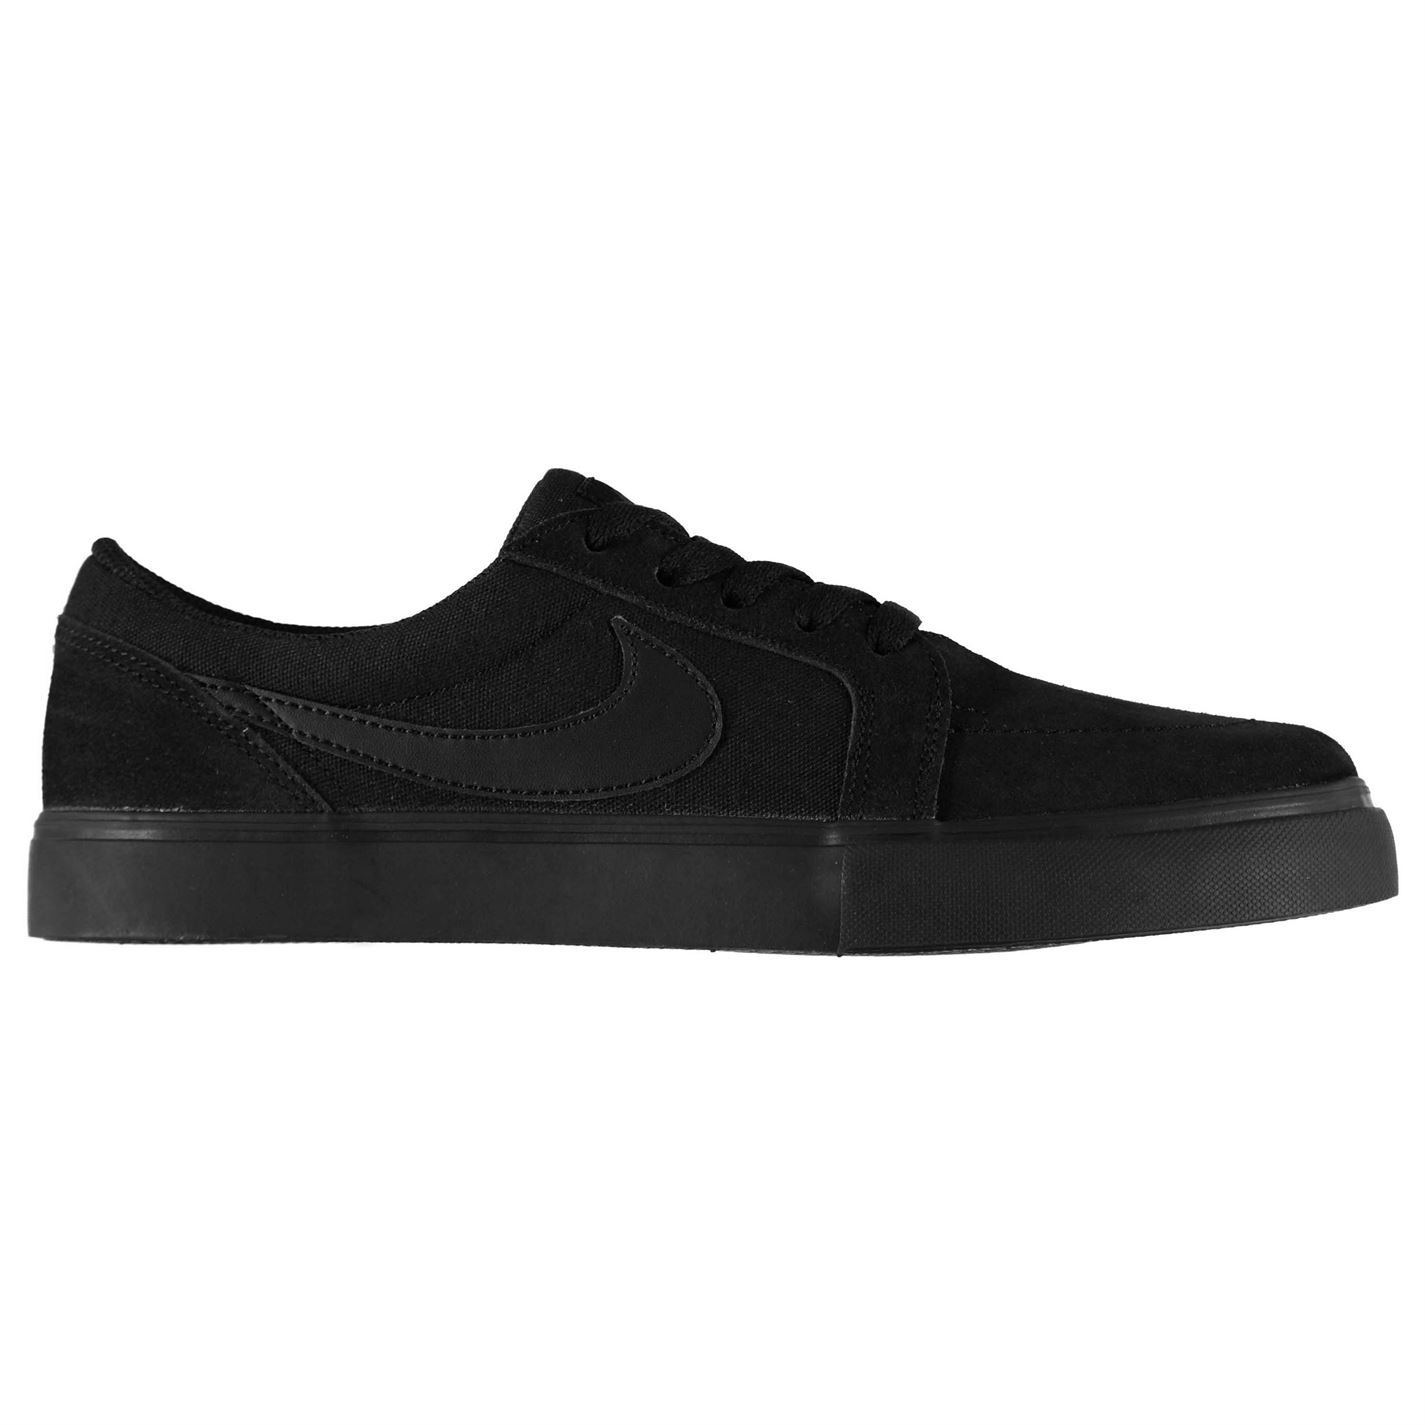 get cheap eddb1 bd152 ... Nike SB Satire II Skate Shoes Mens Black Skateboarding Trainers Sneakers  ...